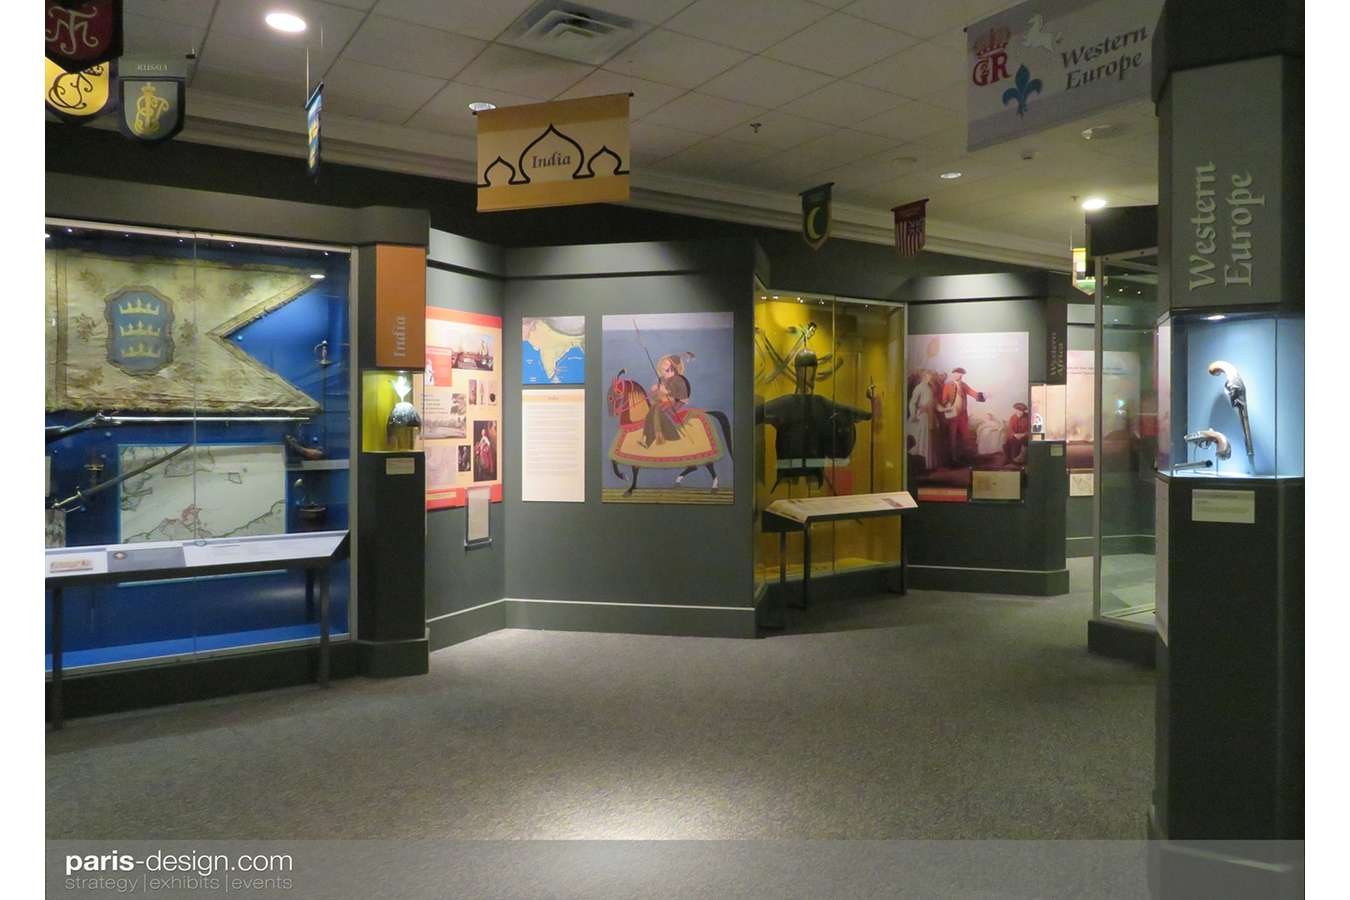 4W 7yrs 2 : Each thematic zone in this gallery has coordinated colors, logos, banners, flags, maps, and graphics